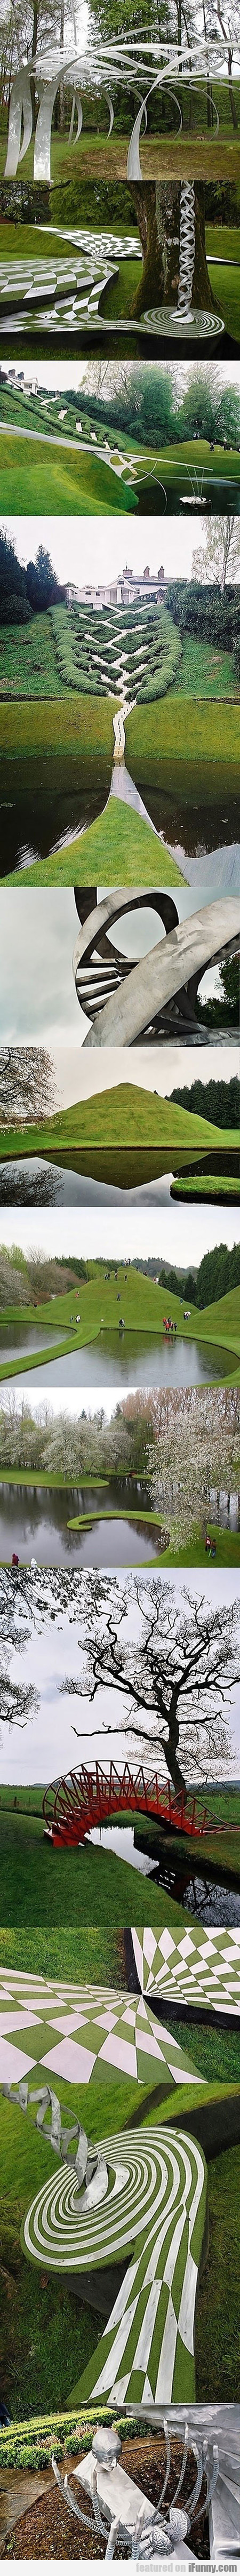 This Is The Garden Of Cosmic Speculation In Scotla